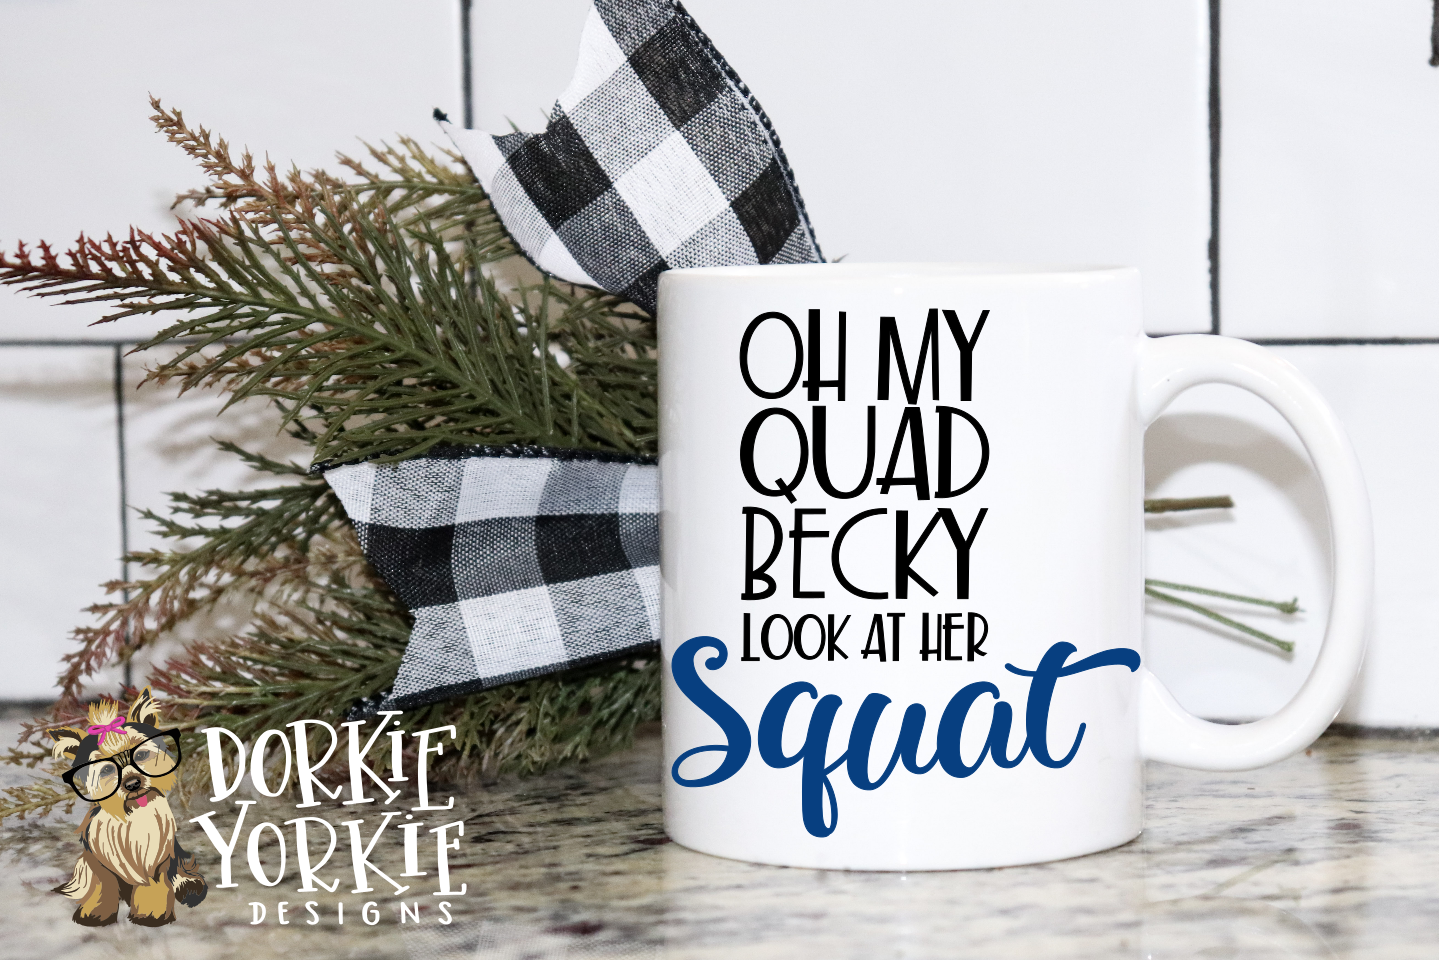 Oh My Quad Becky Look At Her Squat, funny - SVG cut file example image 2